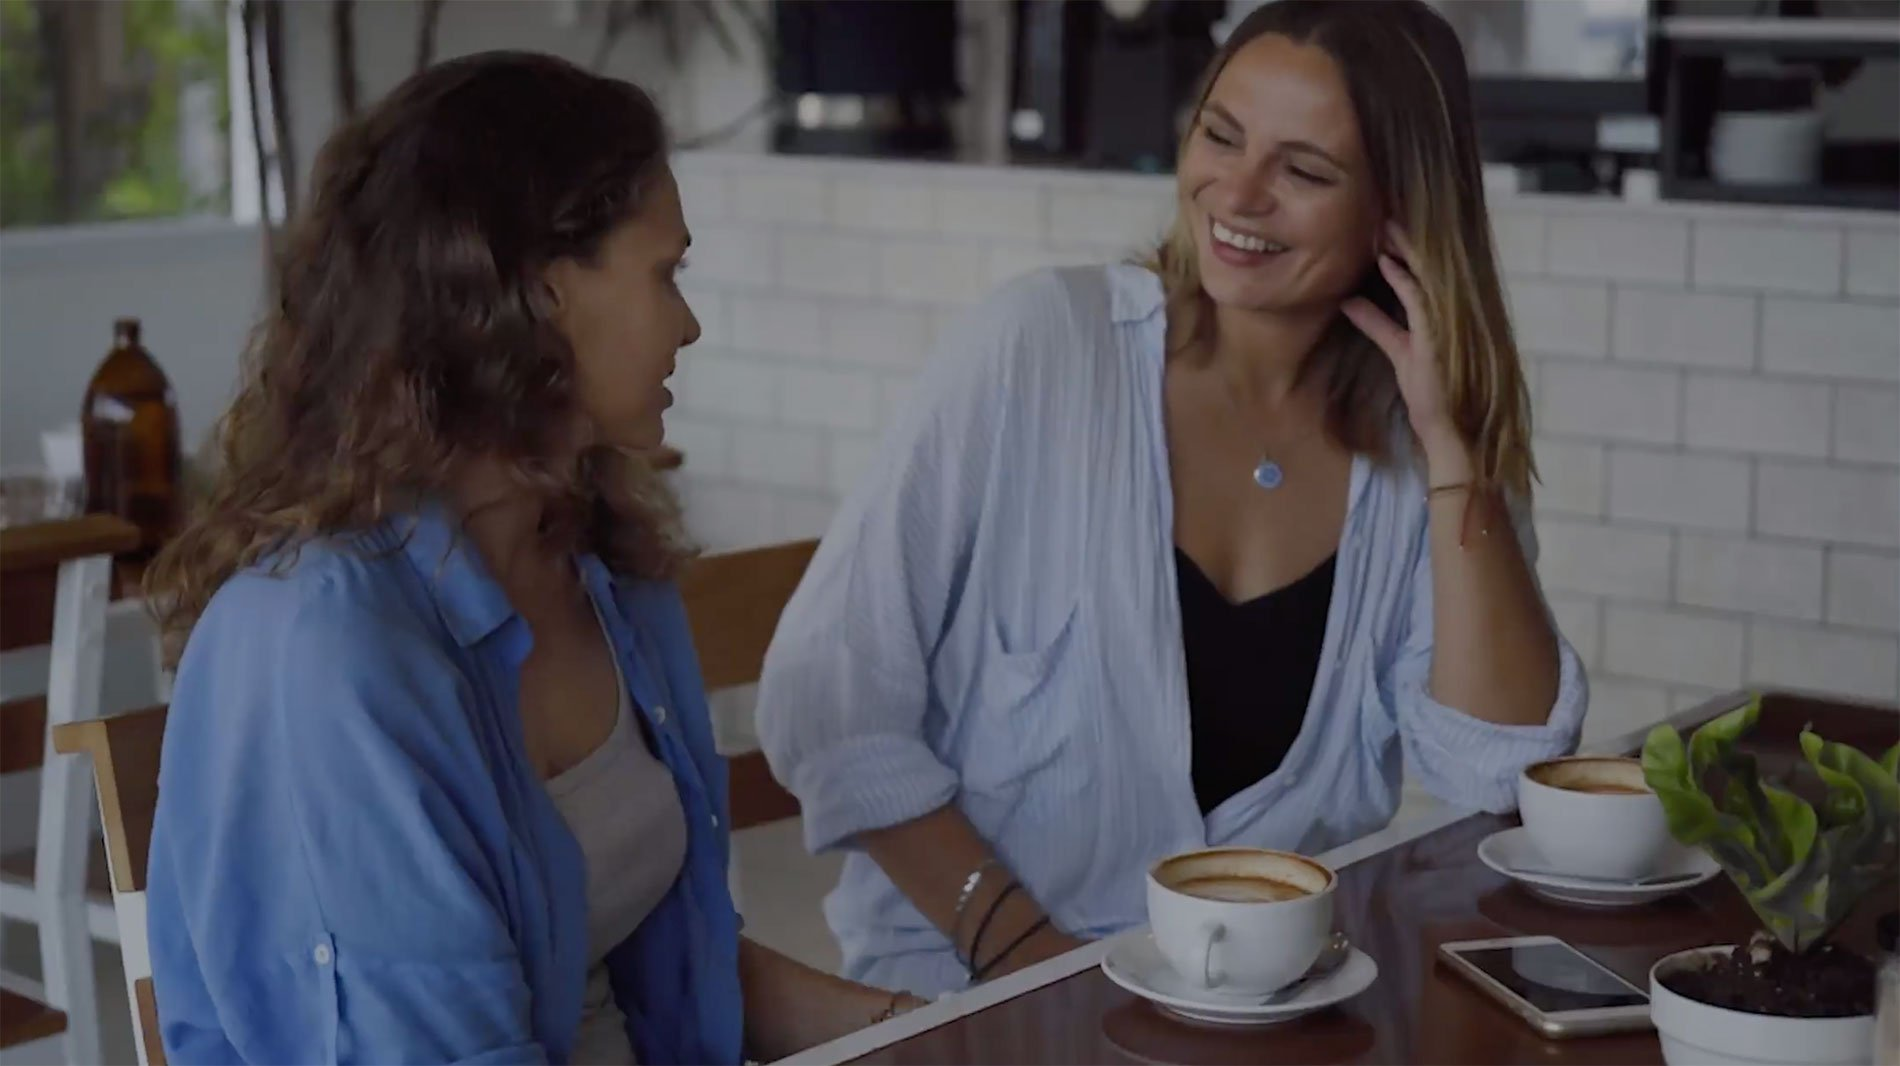 Two friends enjoying coffee as they chat in local cafe - screenshot from feature video